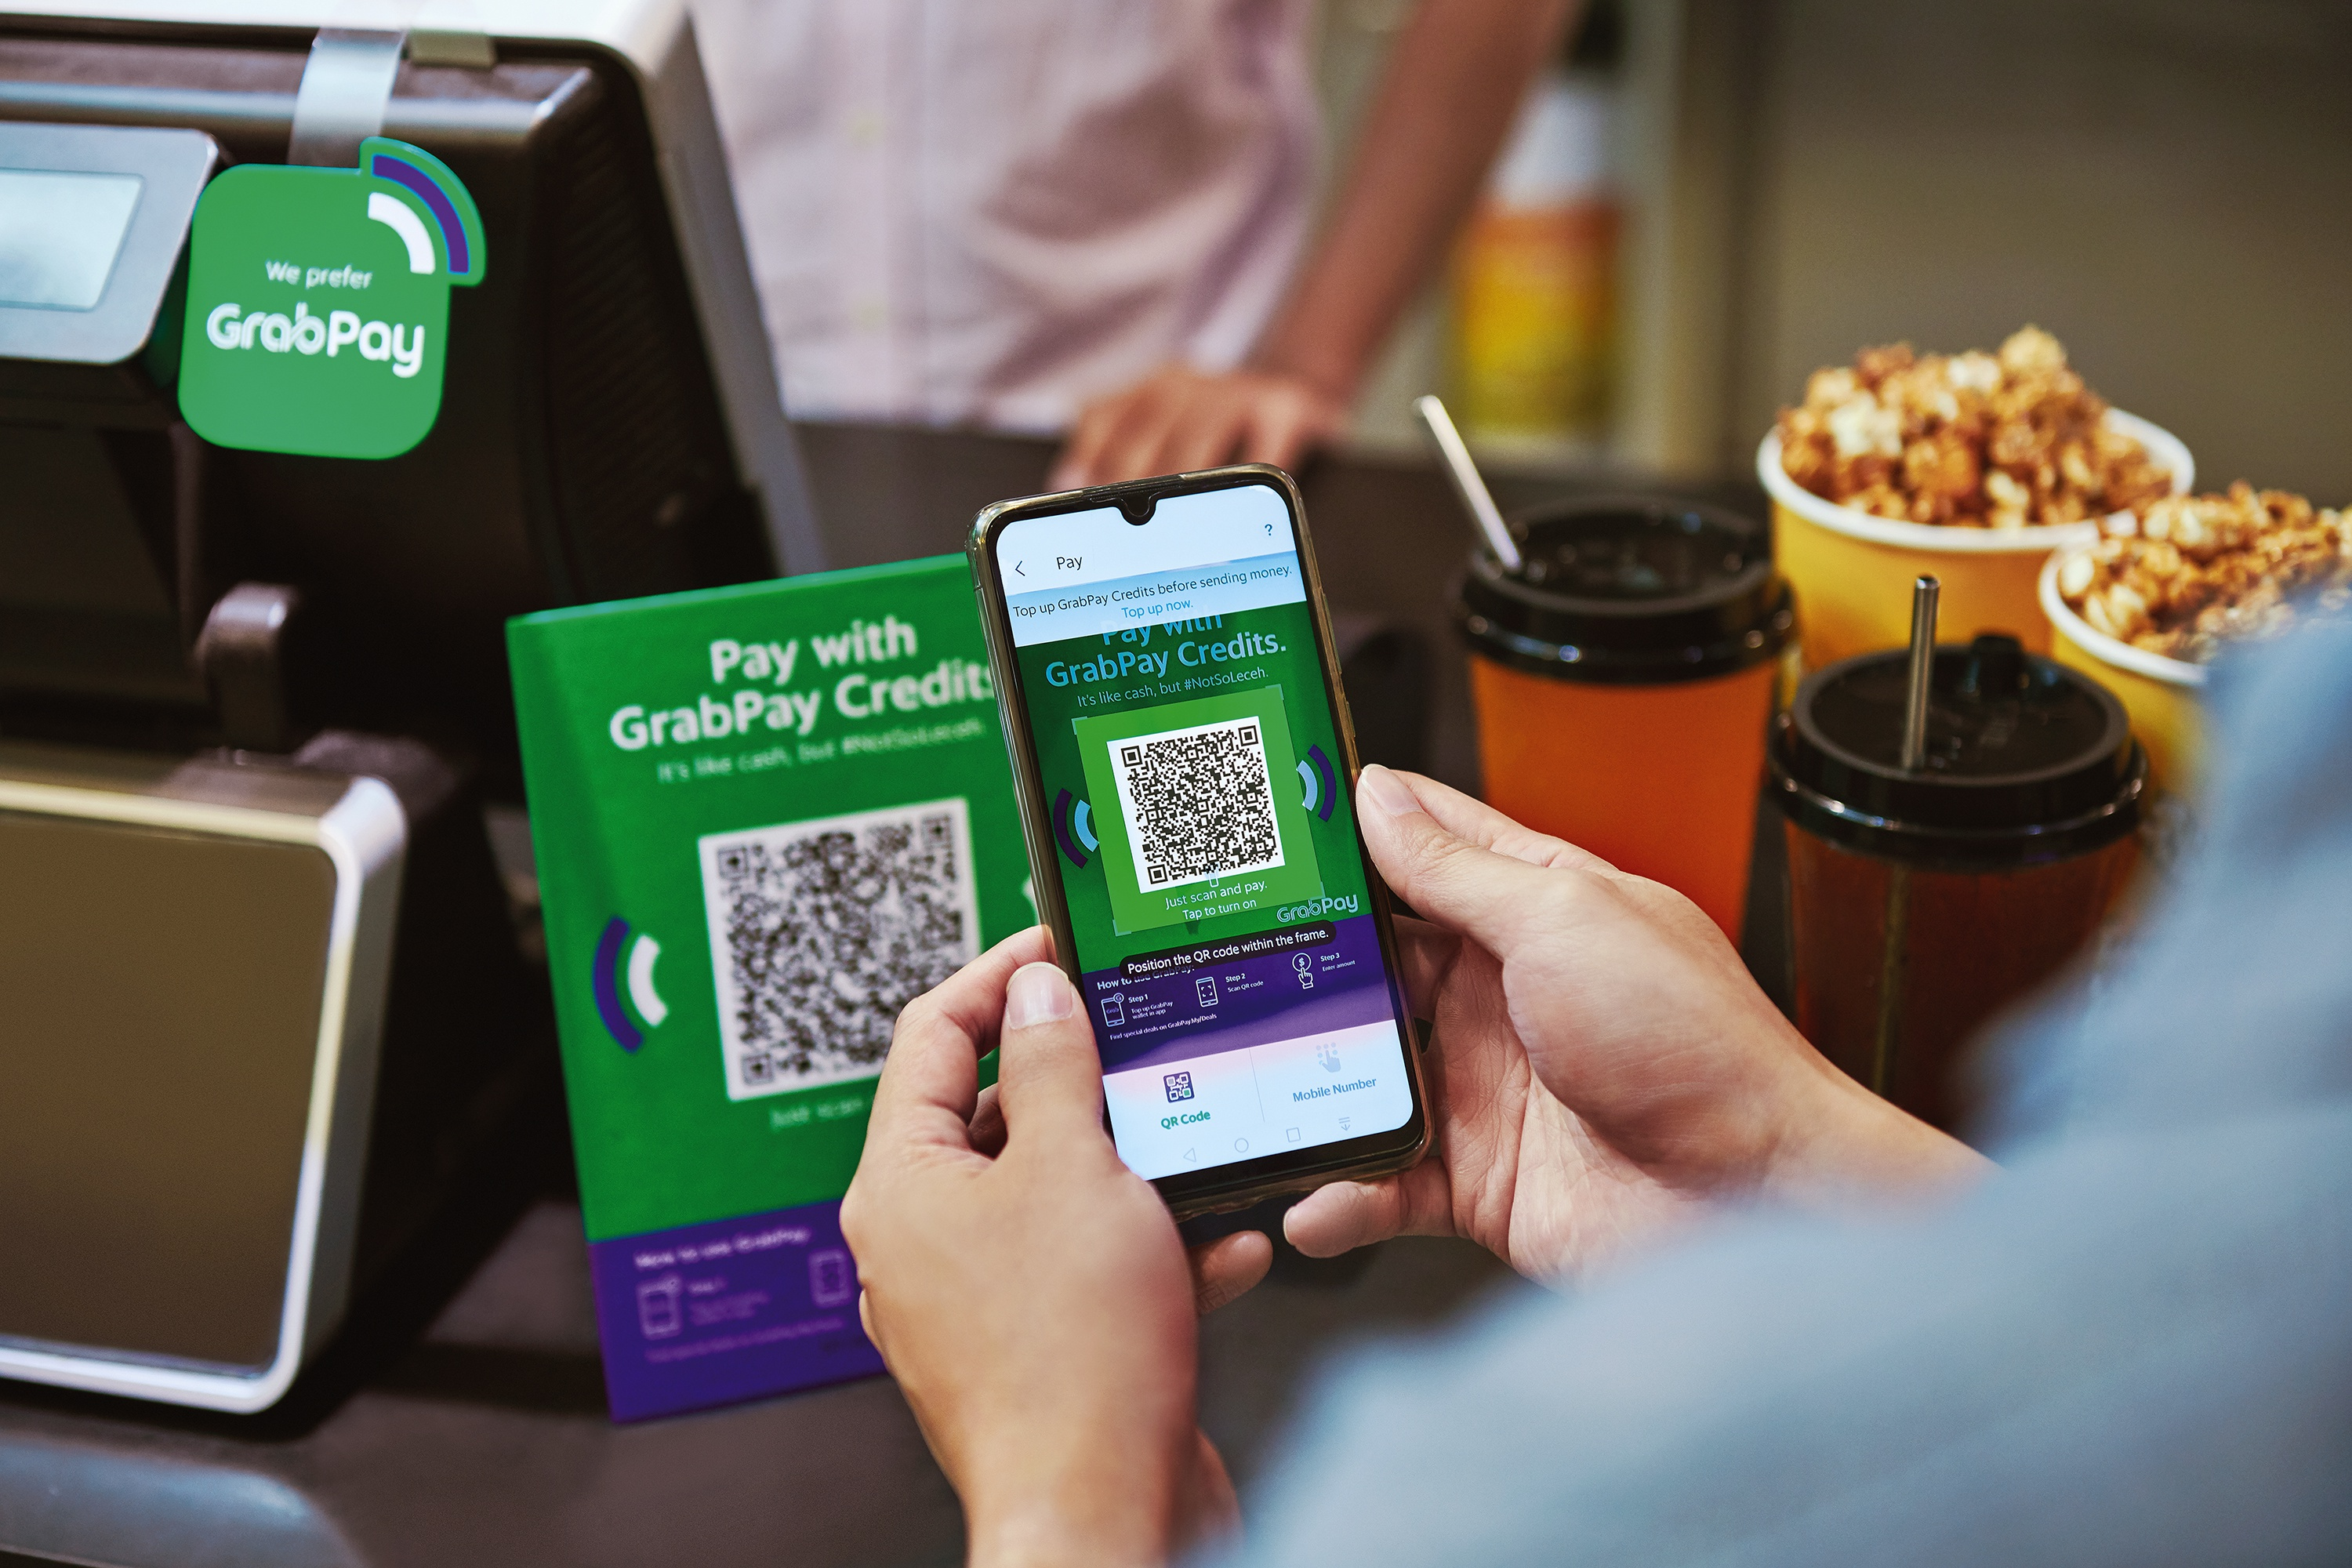 Image from GrabPay